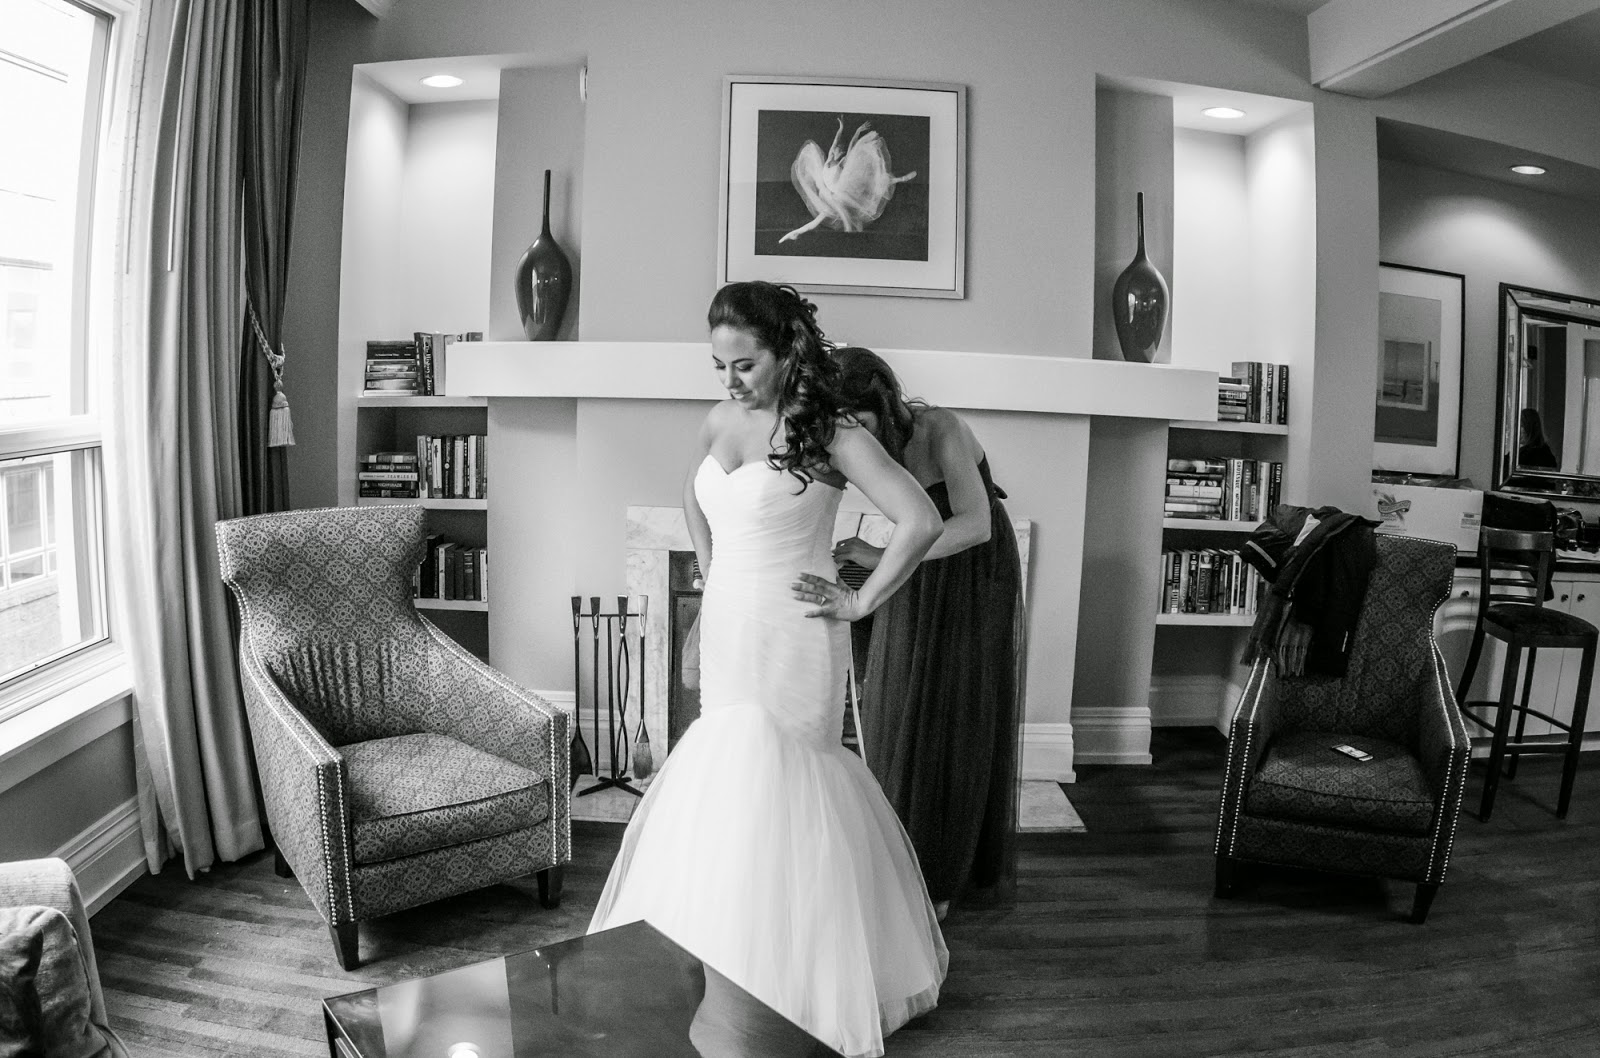 Putting the finishing touches on the wedding dress - cultivatedrambler.com